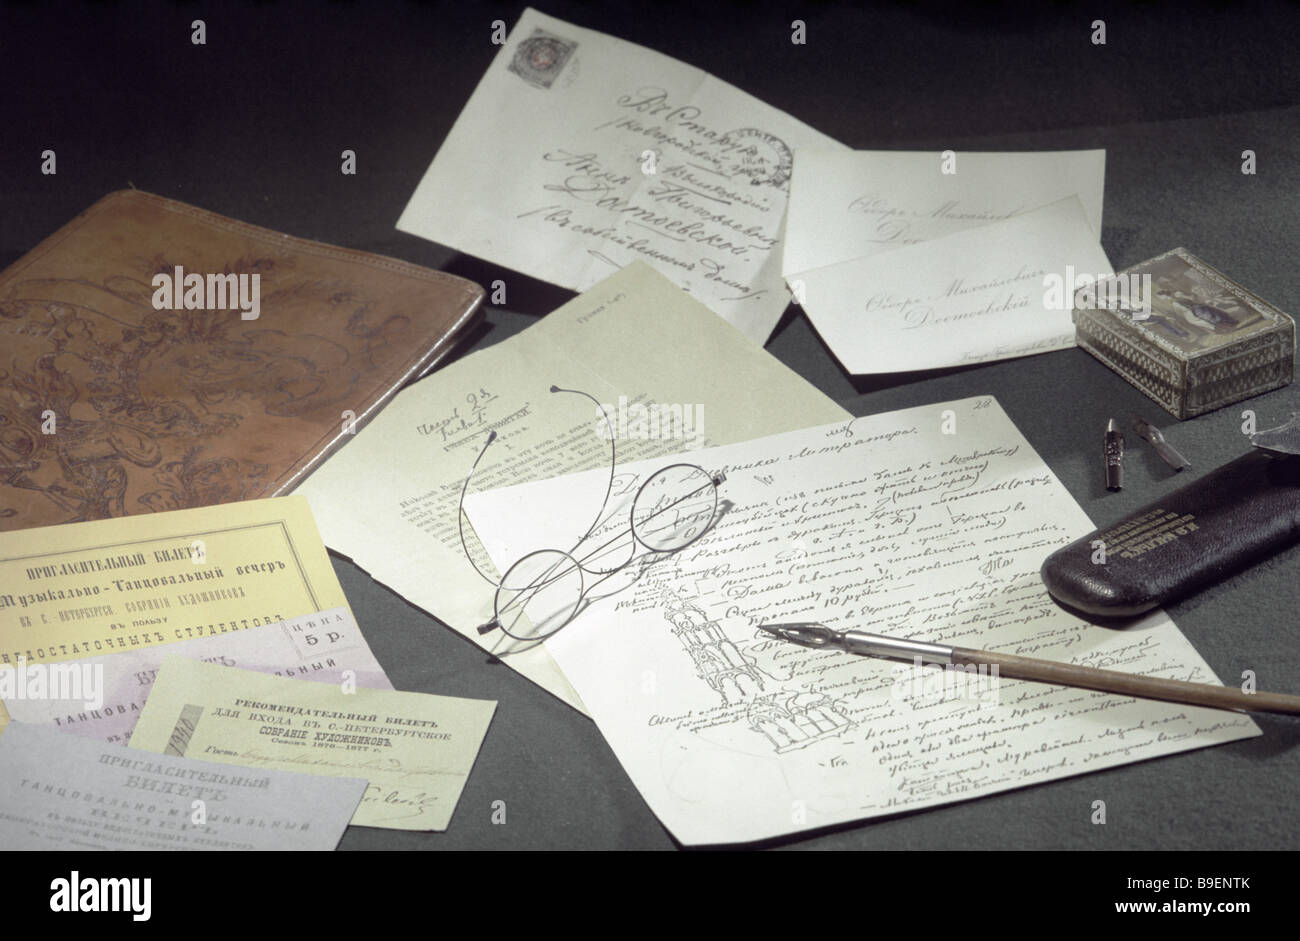 Fedor Dostoyevsky s personal belongings from the collection of the Fedor Dostoyevsky Museum Apartment - Stock Image